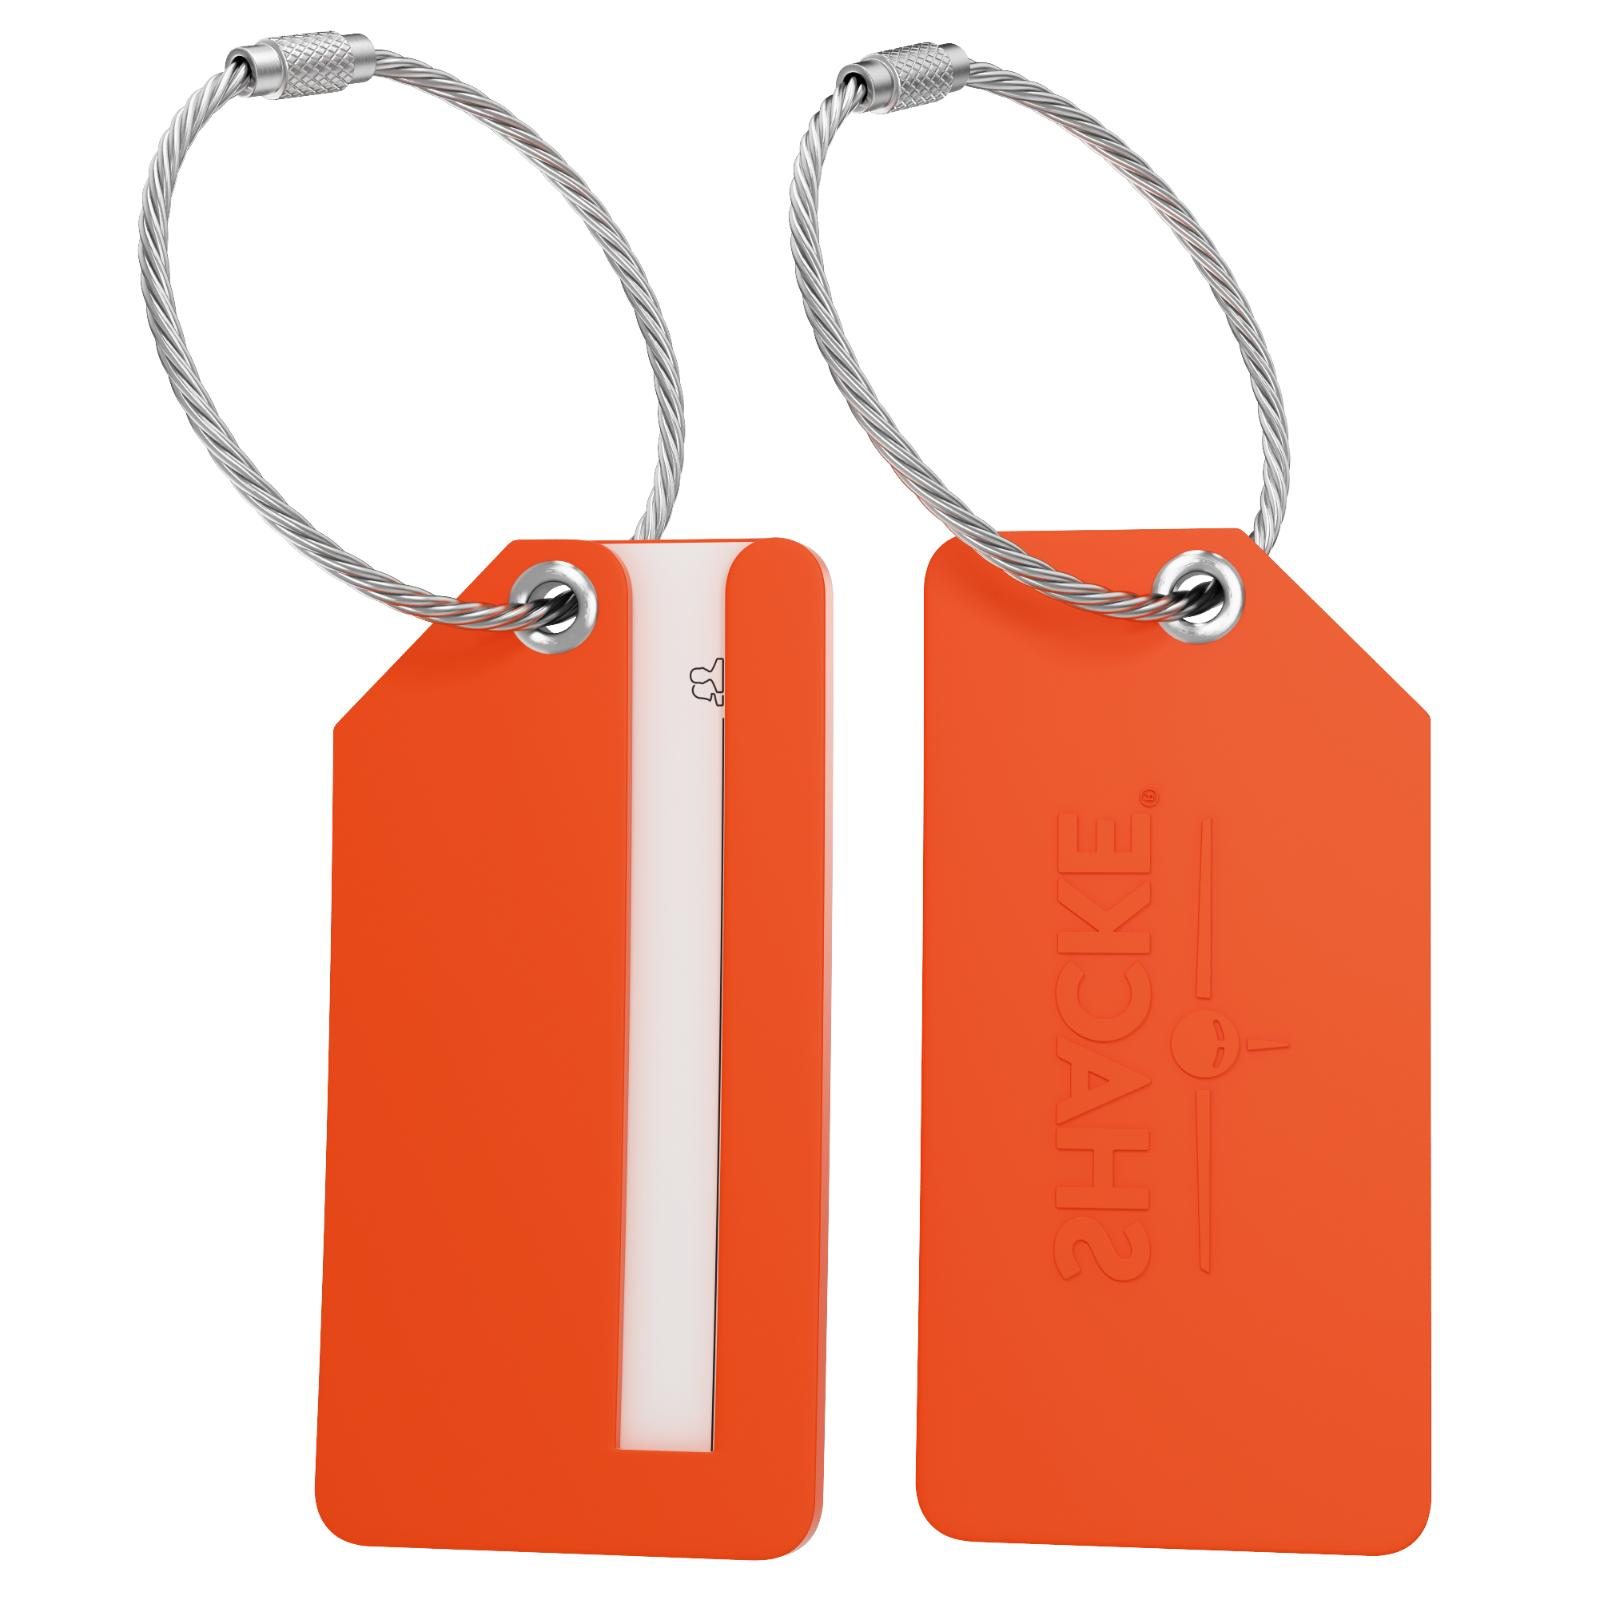 Tags Rubber Tags - Privacy Cover